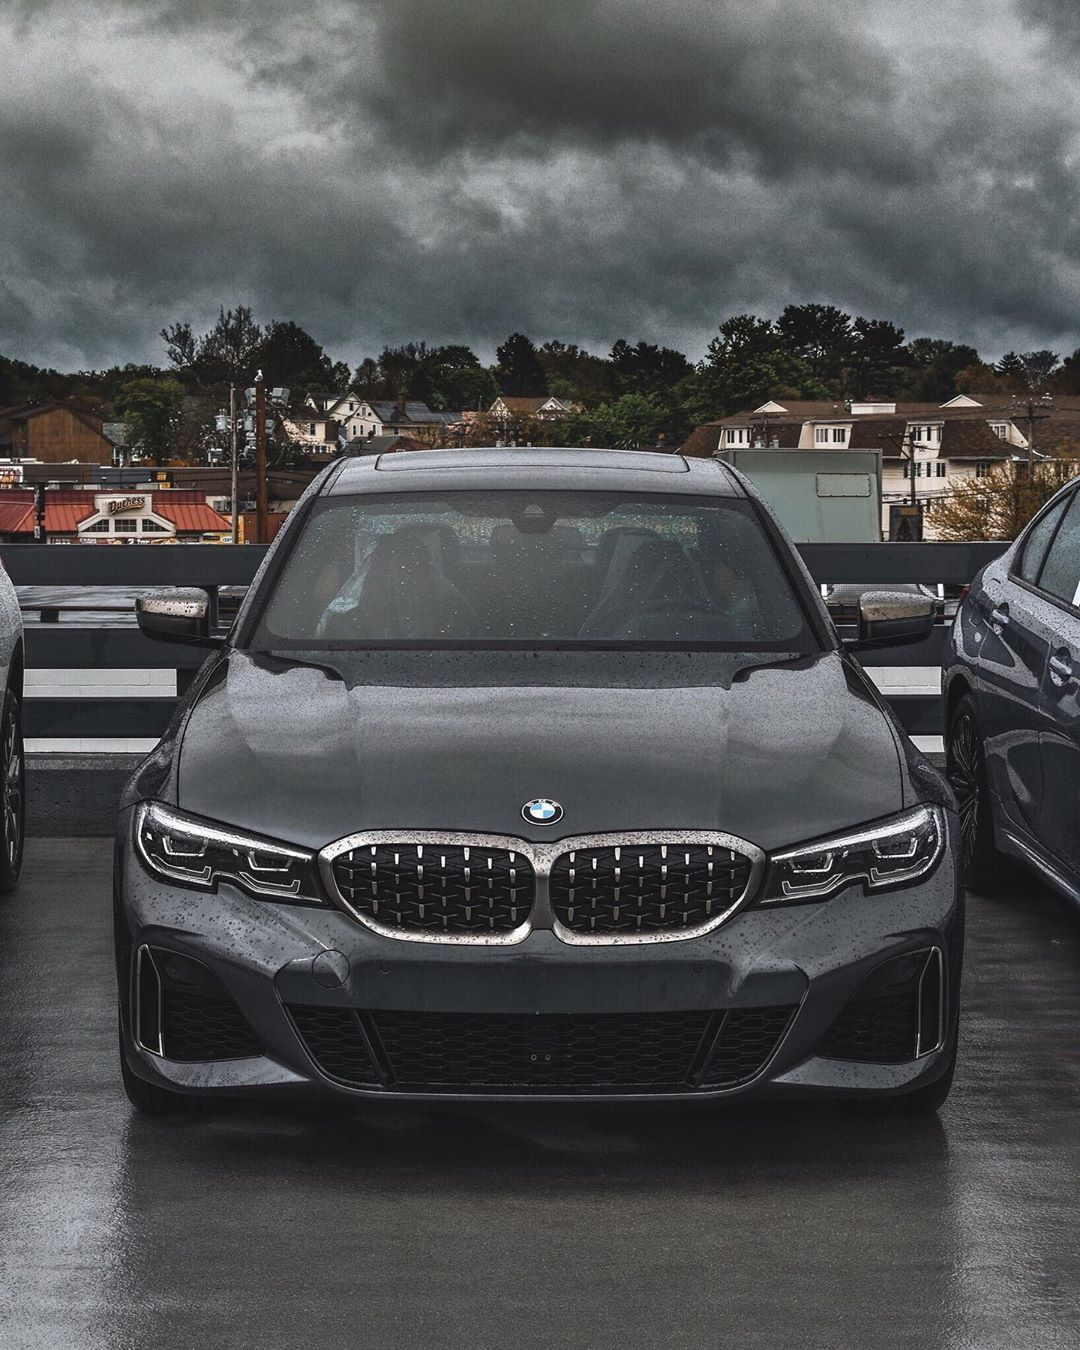 The Stormy Weather Is No Match For The Thunder Packed Inside This Mineral Grey 2020 Bmw M340i Our New 3 Series Selection I Bmw New 3 Series Bmw 3 Series Sedan